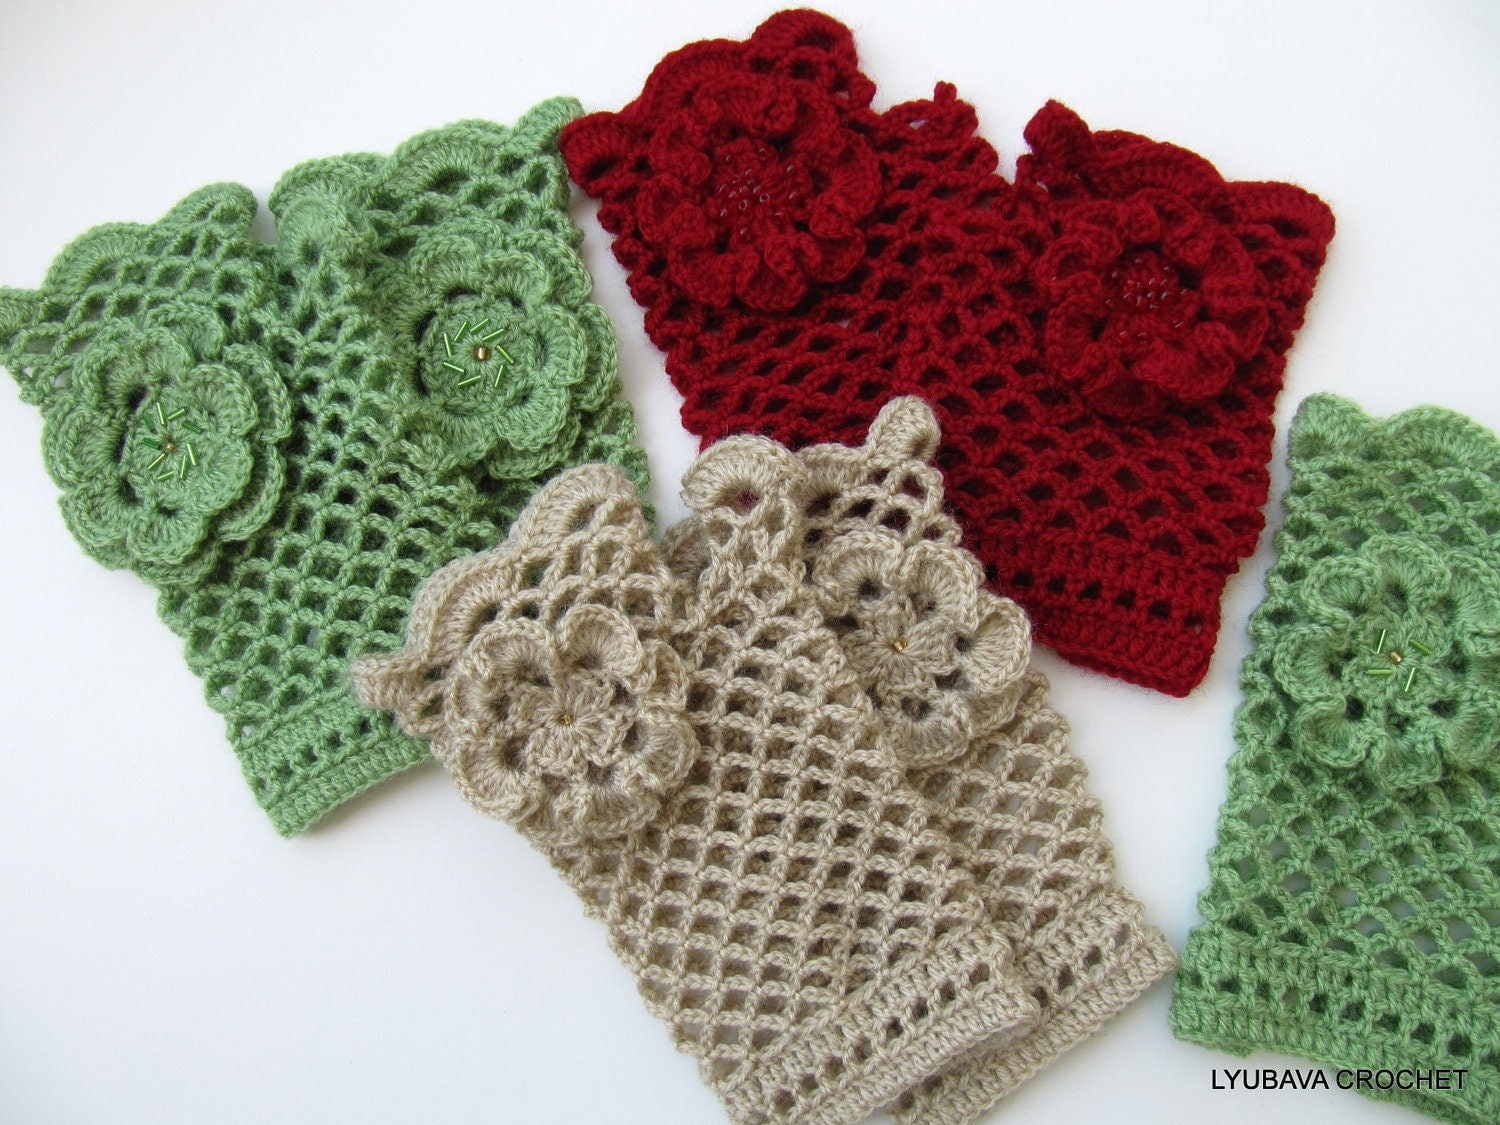 Crochet Patterns Gloves Fingerless : CROCHET PATTERN Womens Fingerless Gloves by LyubavaCrochet